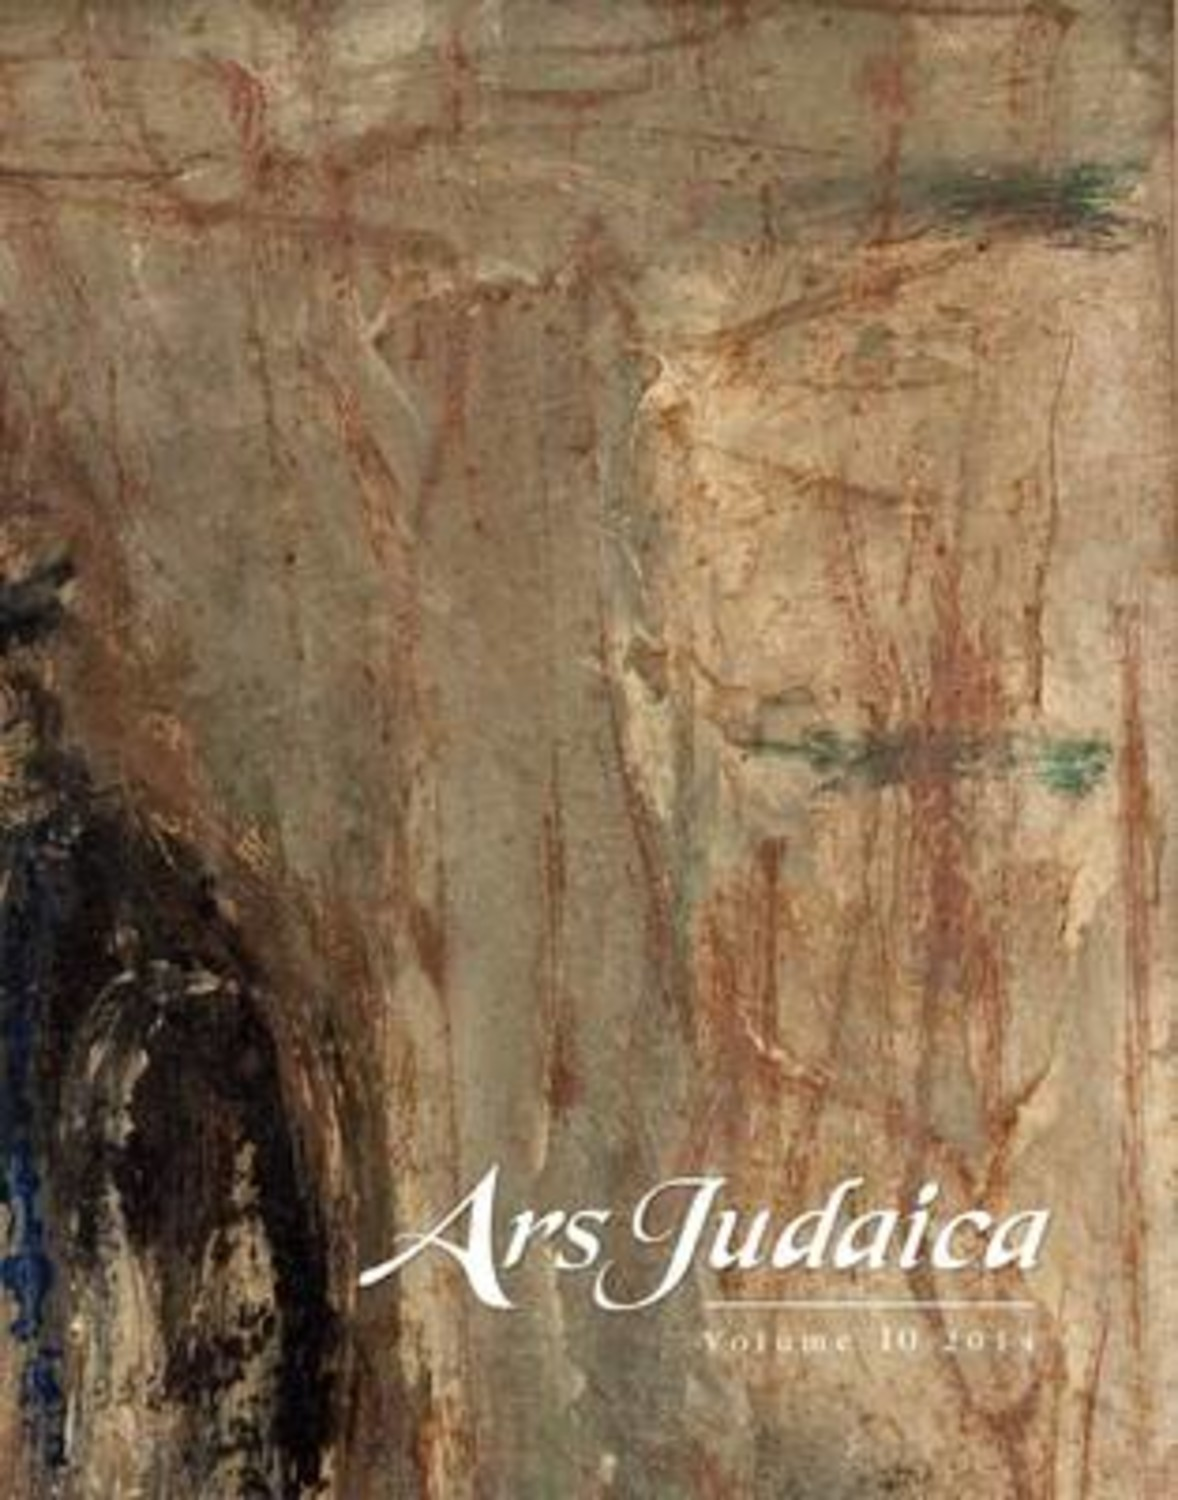 Ars Judaica: The Bar-Ilan Journal of Jewish Art, Volume 10